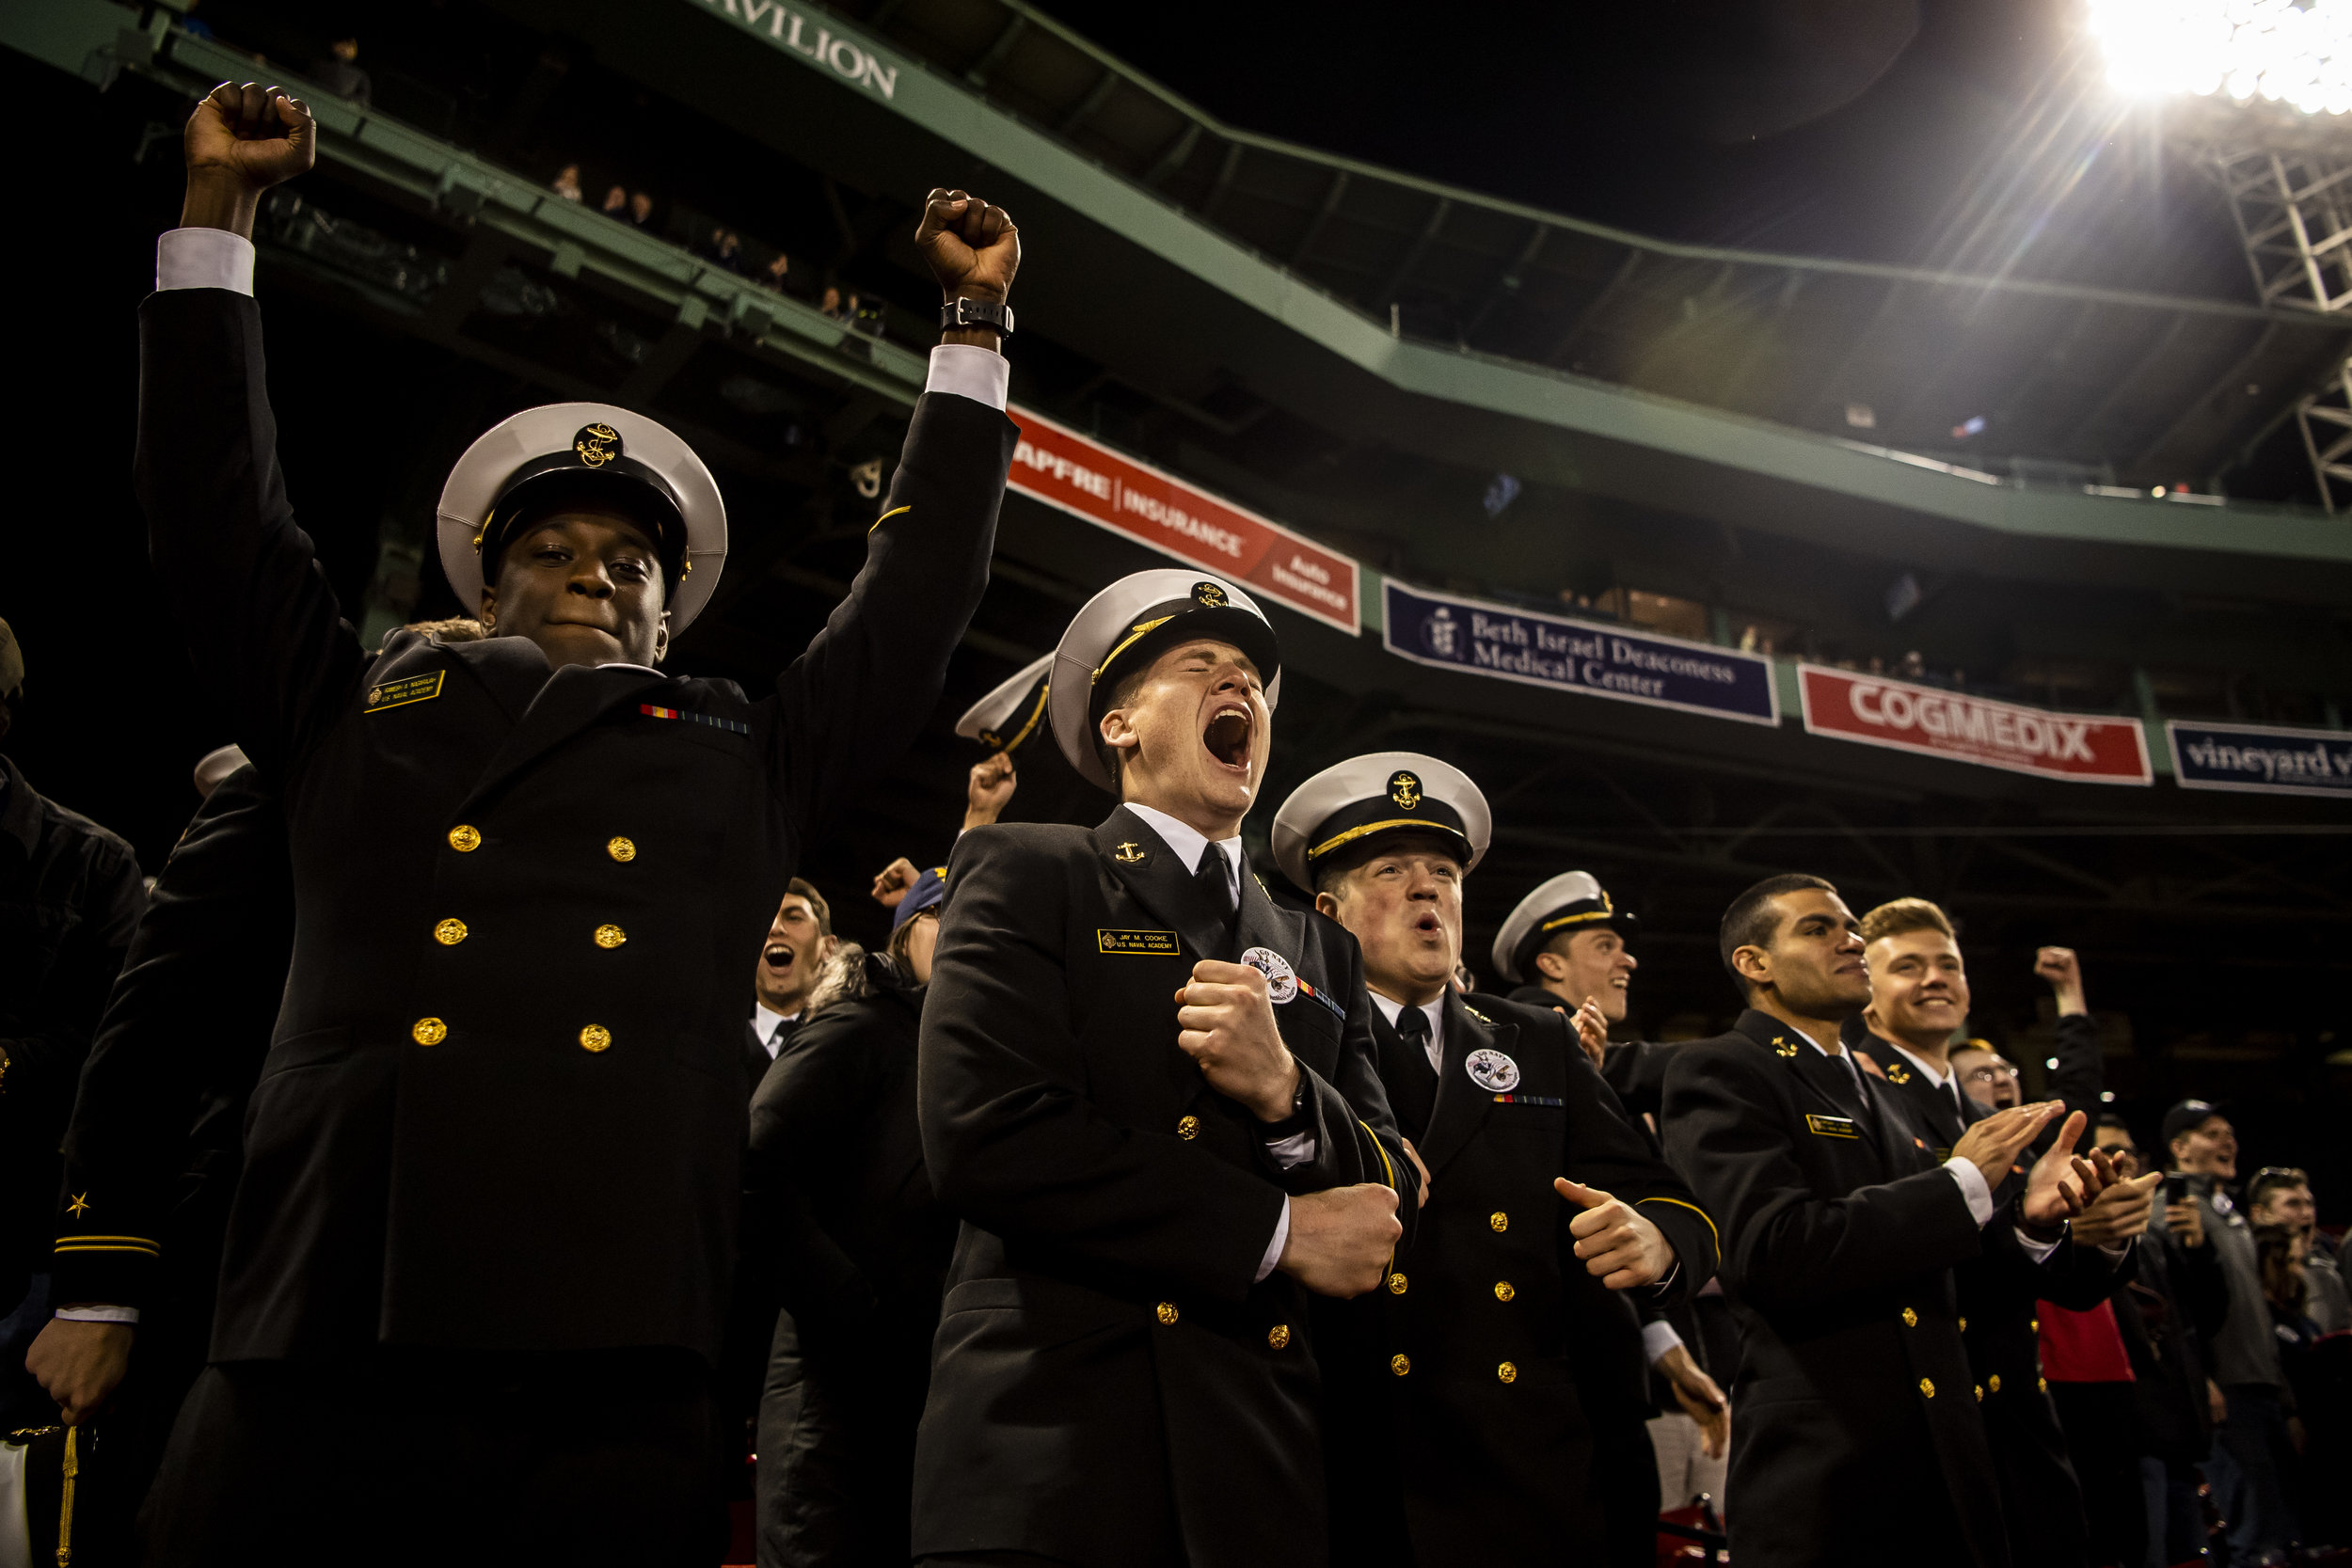 April 20, 2018, Boston, MA: Navy cadets clap and celebrate after the game as Army - West Point lost to The Naval Academy at Fenway Park in Boston, Massachusetts Friday, April 20, 2018. (Photo by Matthew Thomas/Boston Red Sox)